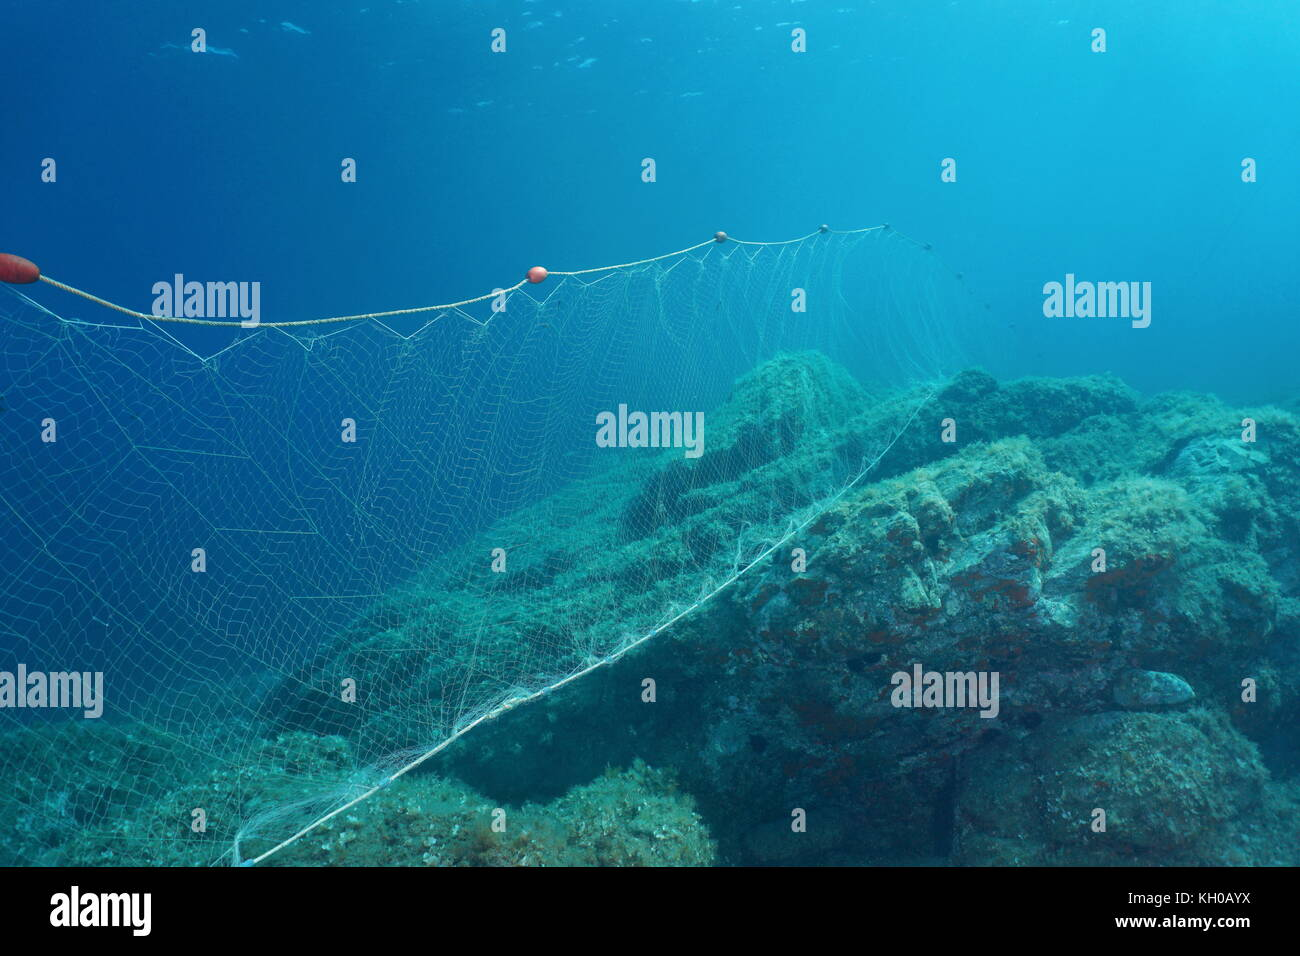 Underwater a fishing net (gillnet) fixed on rocks on the seabed, Mediterranean sea, Costa Brava, Spain - Stock Image